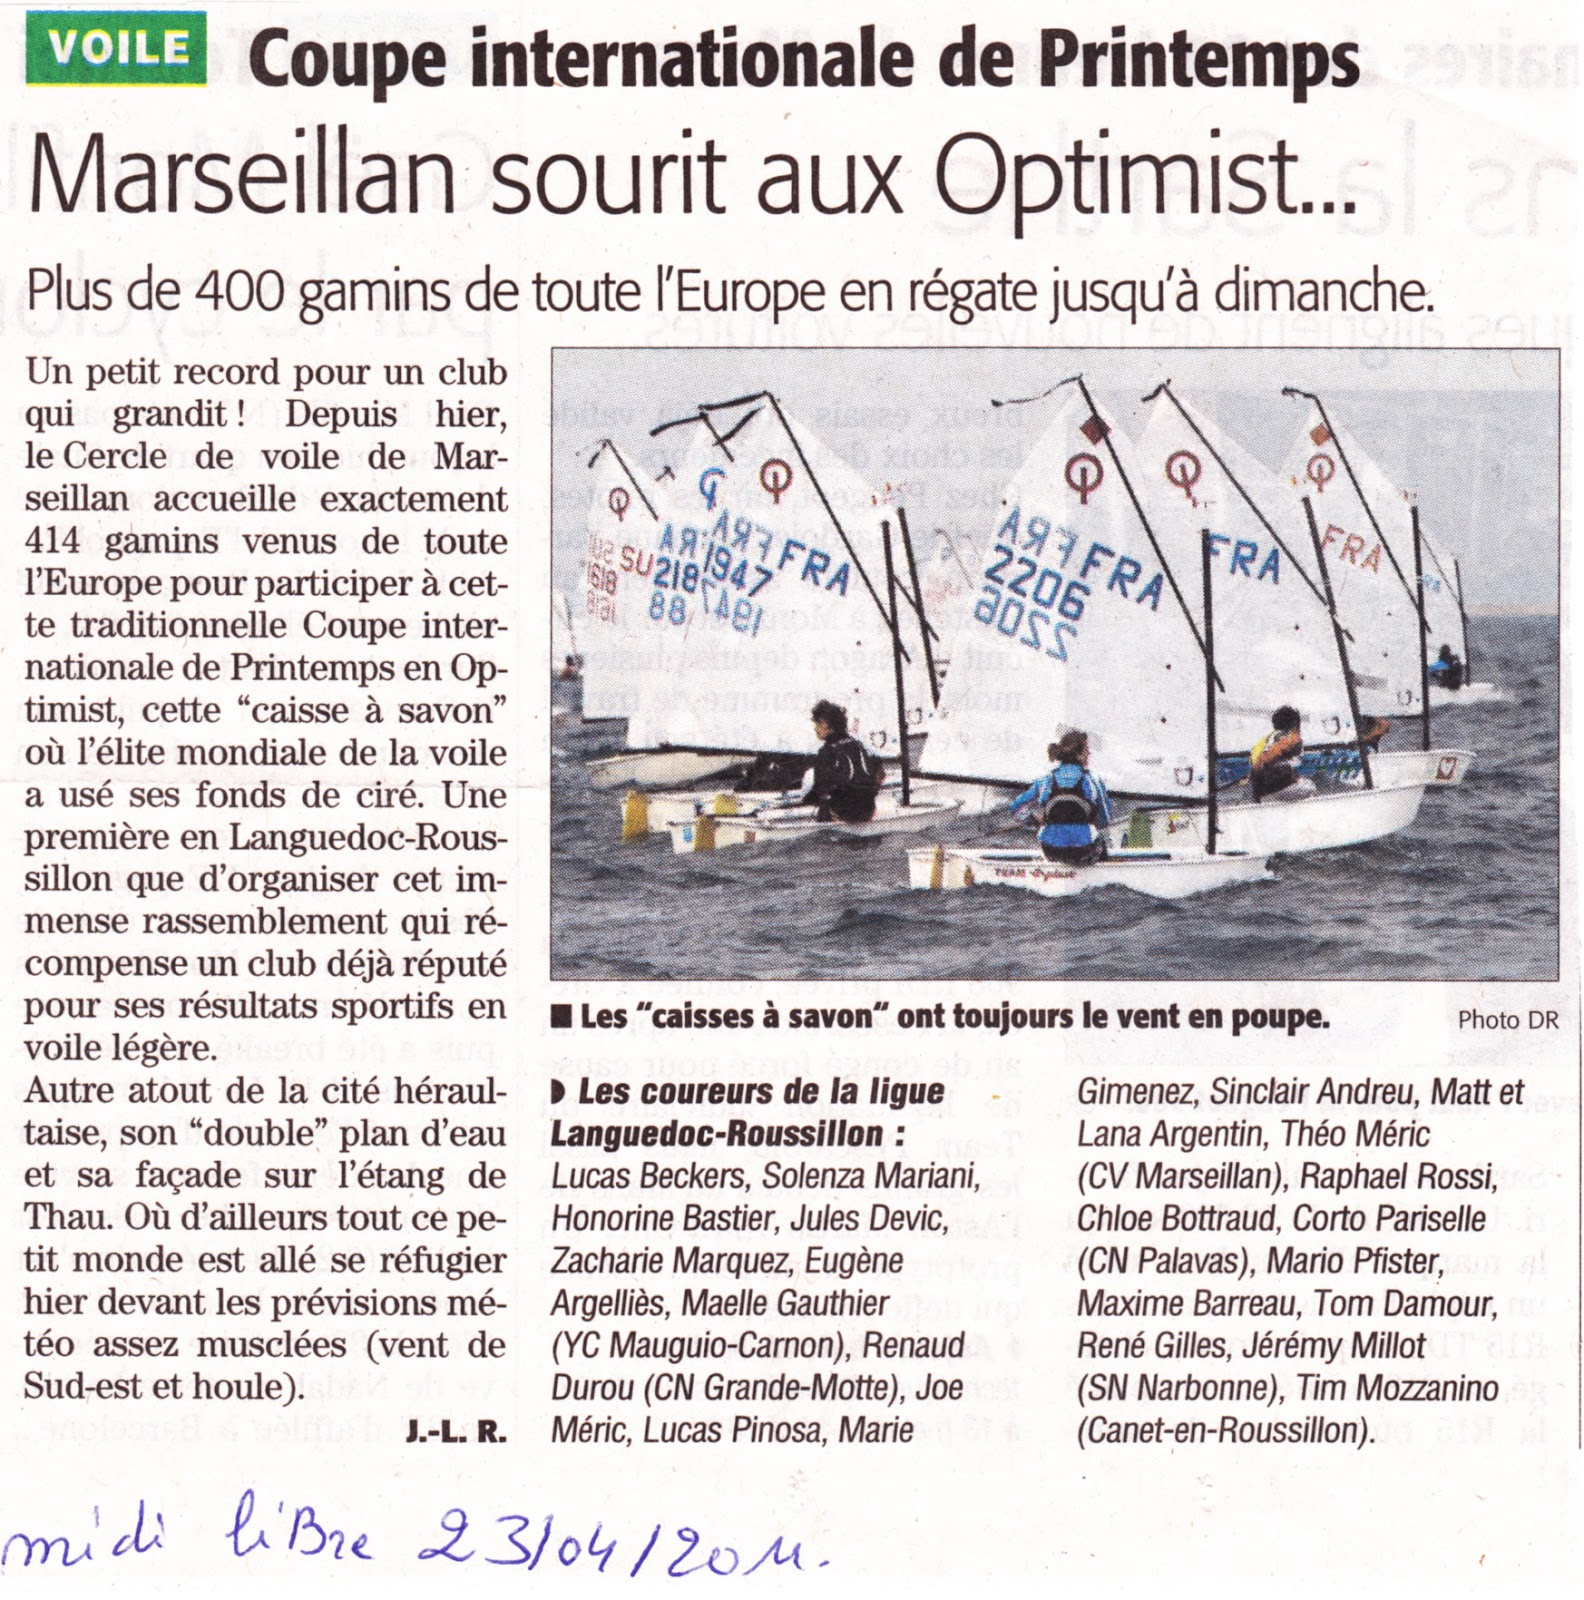 CIP 2011 Marseillan régate voile Optimist coupe_internationale_de_printemps génération-opti